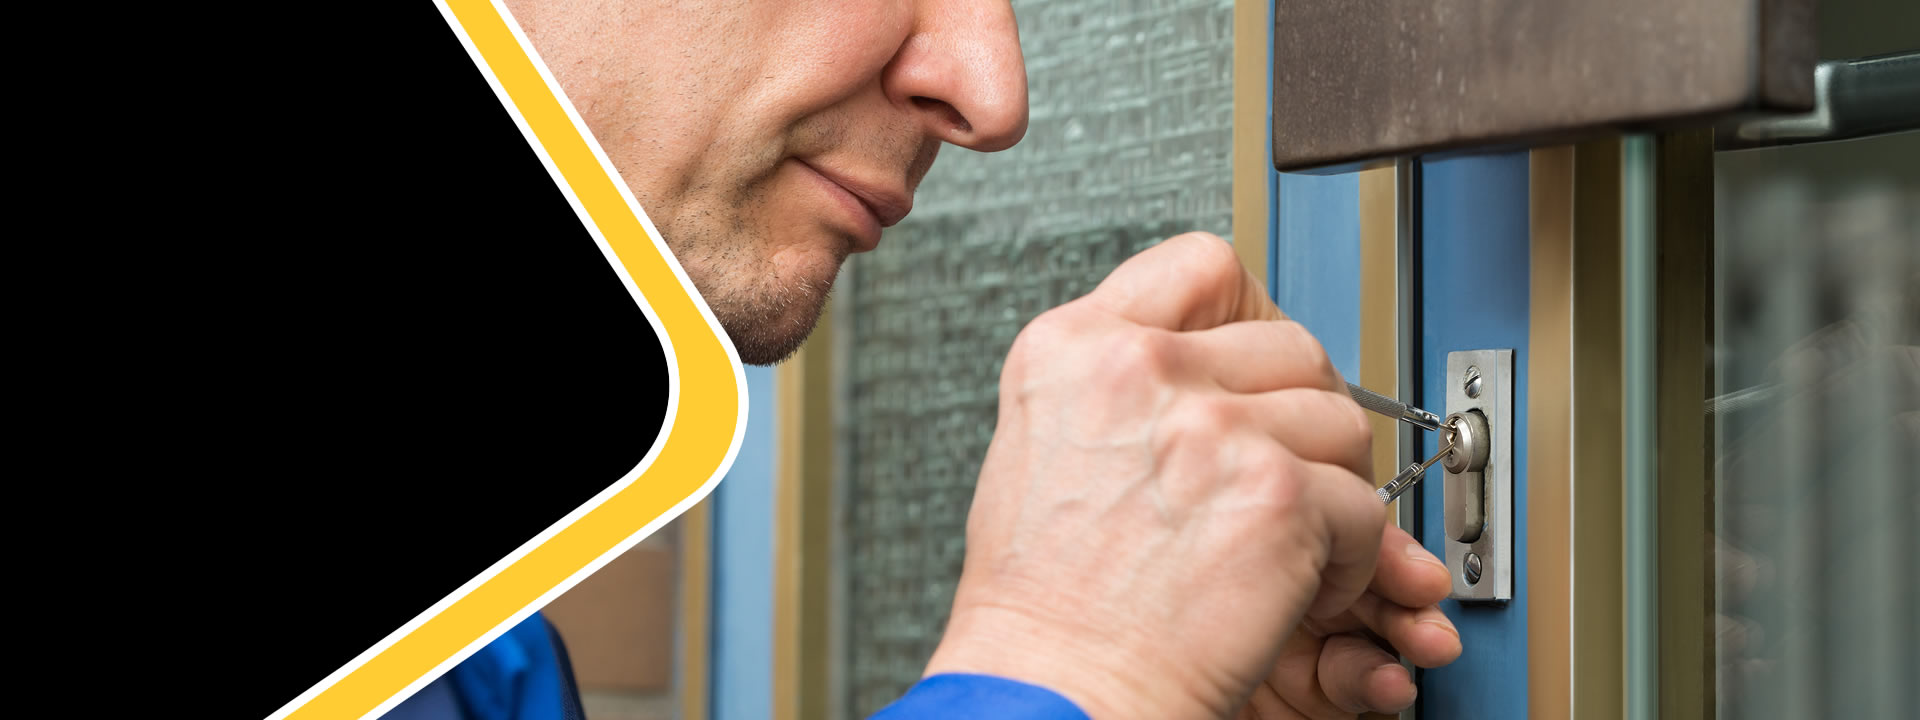 Locksmith in Norcross